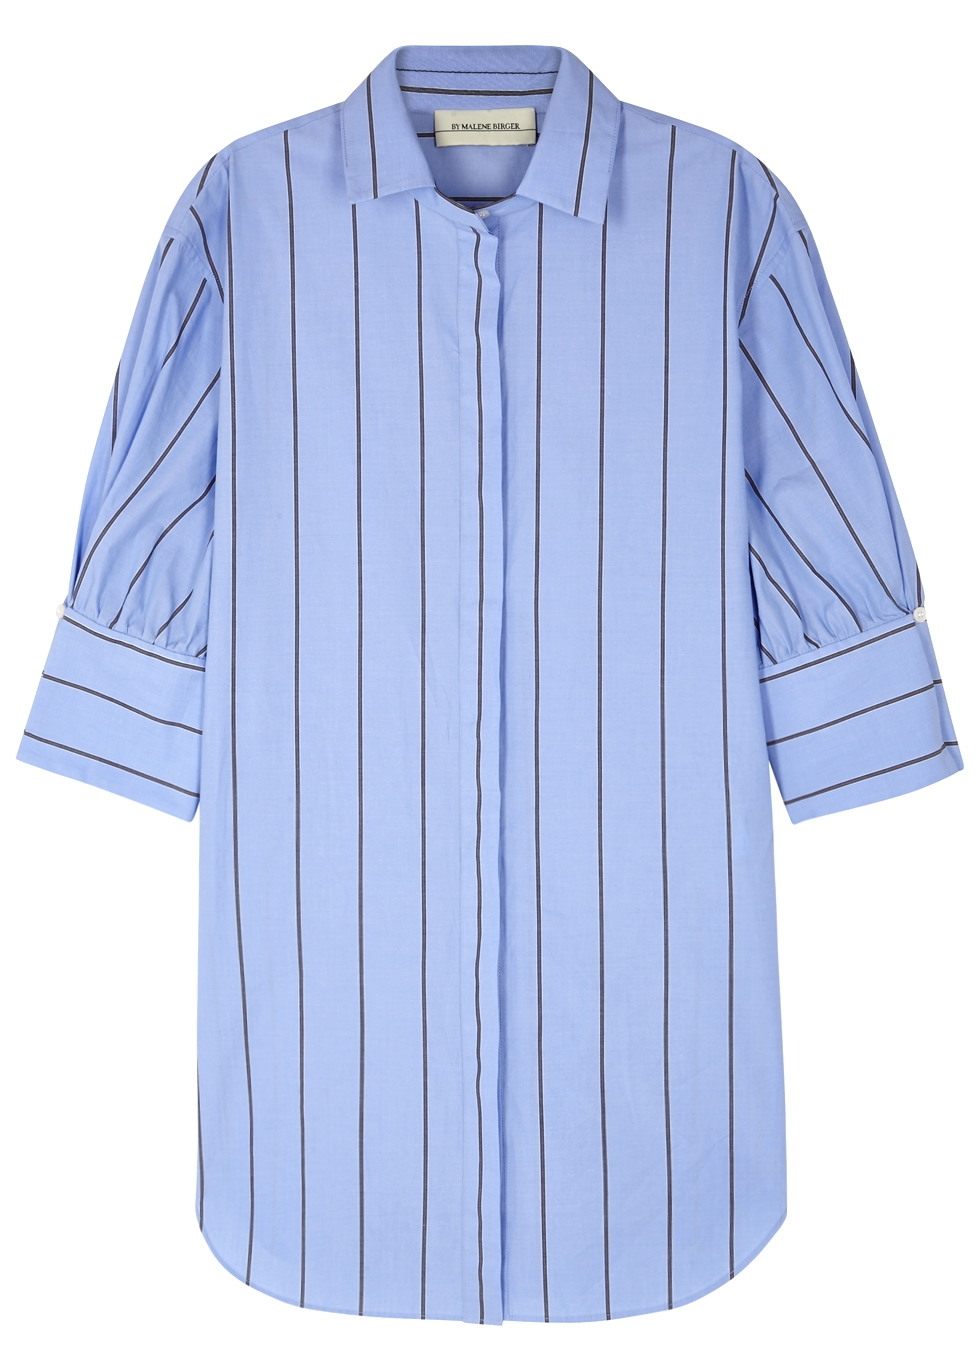 KIRIE BLUE STRIPED POPLIN SHIRT